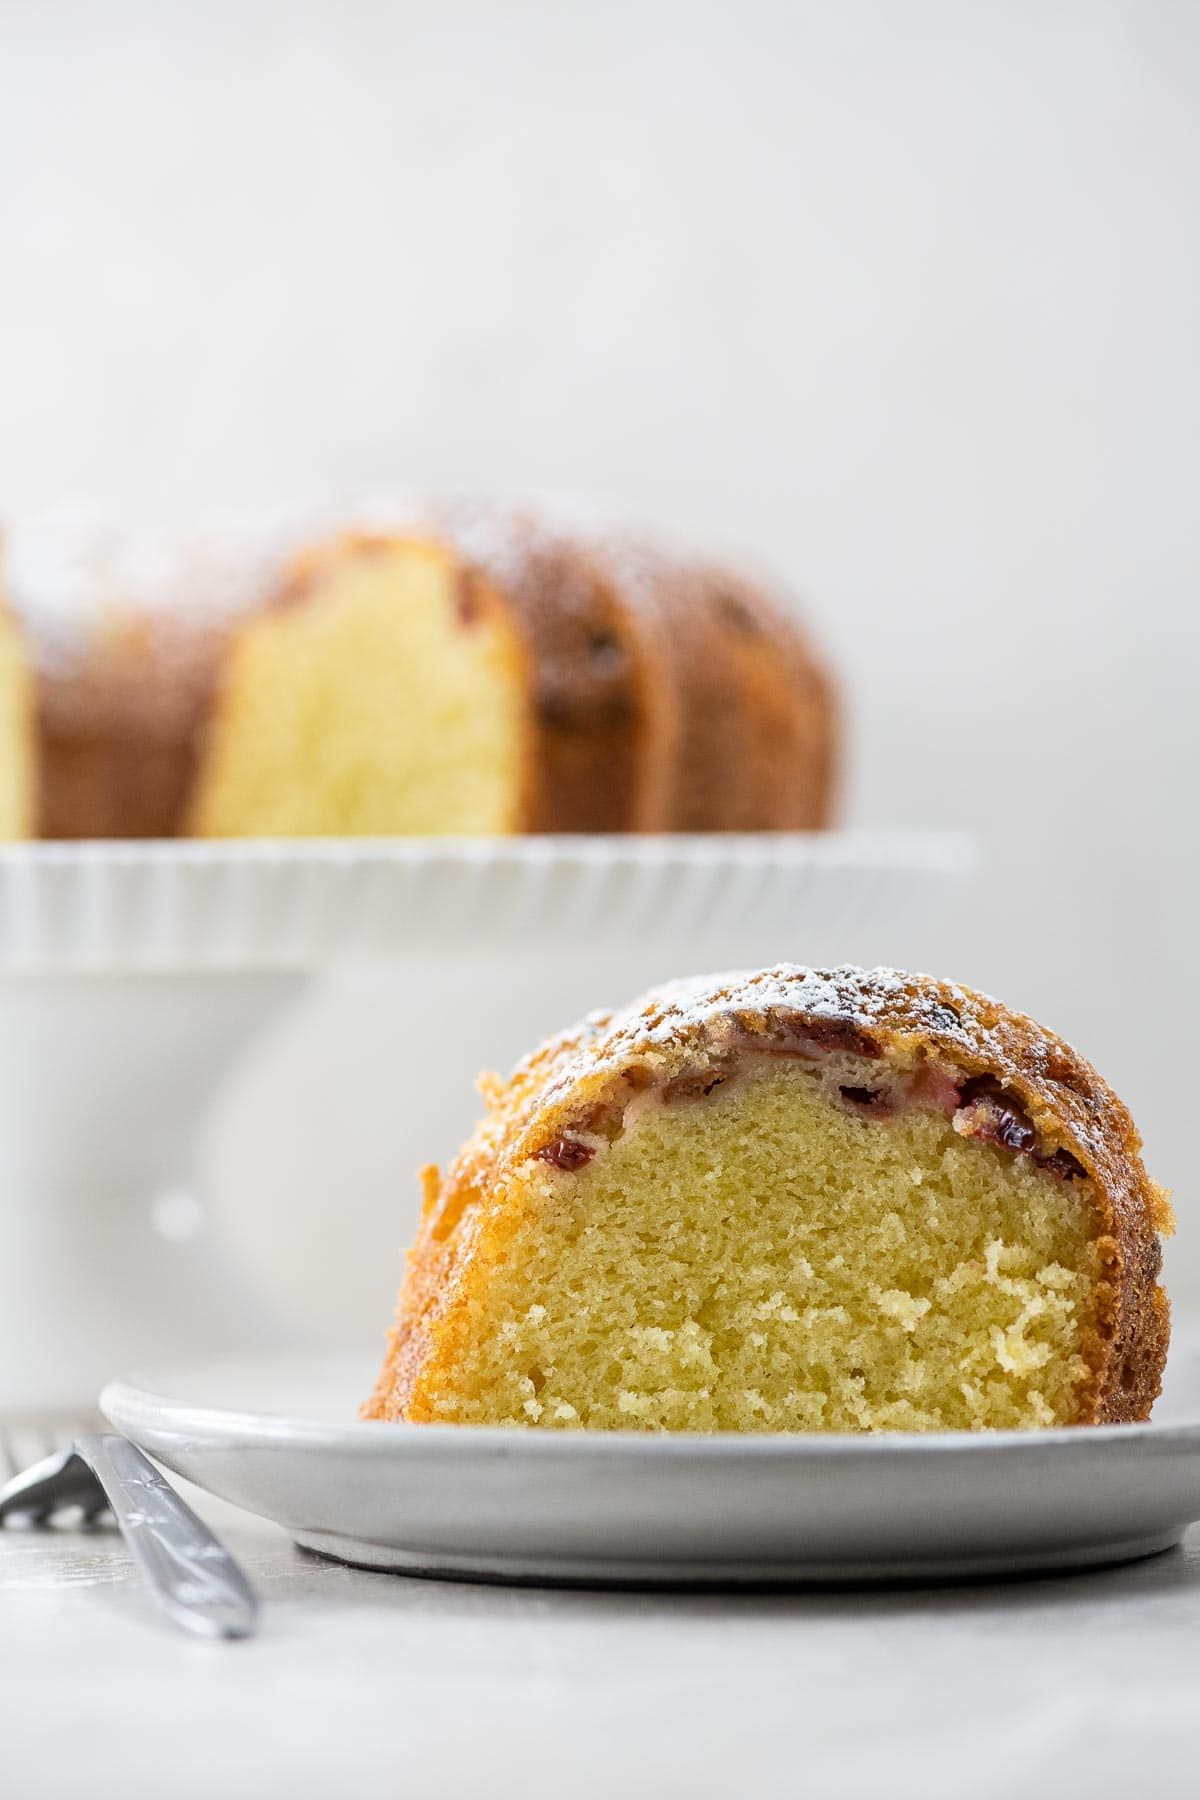 a slice of sour cherry cake on a plate with the rest of the cake on a stand behind it